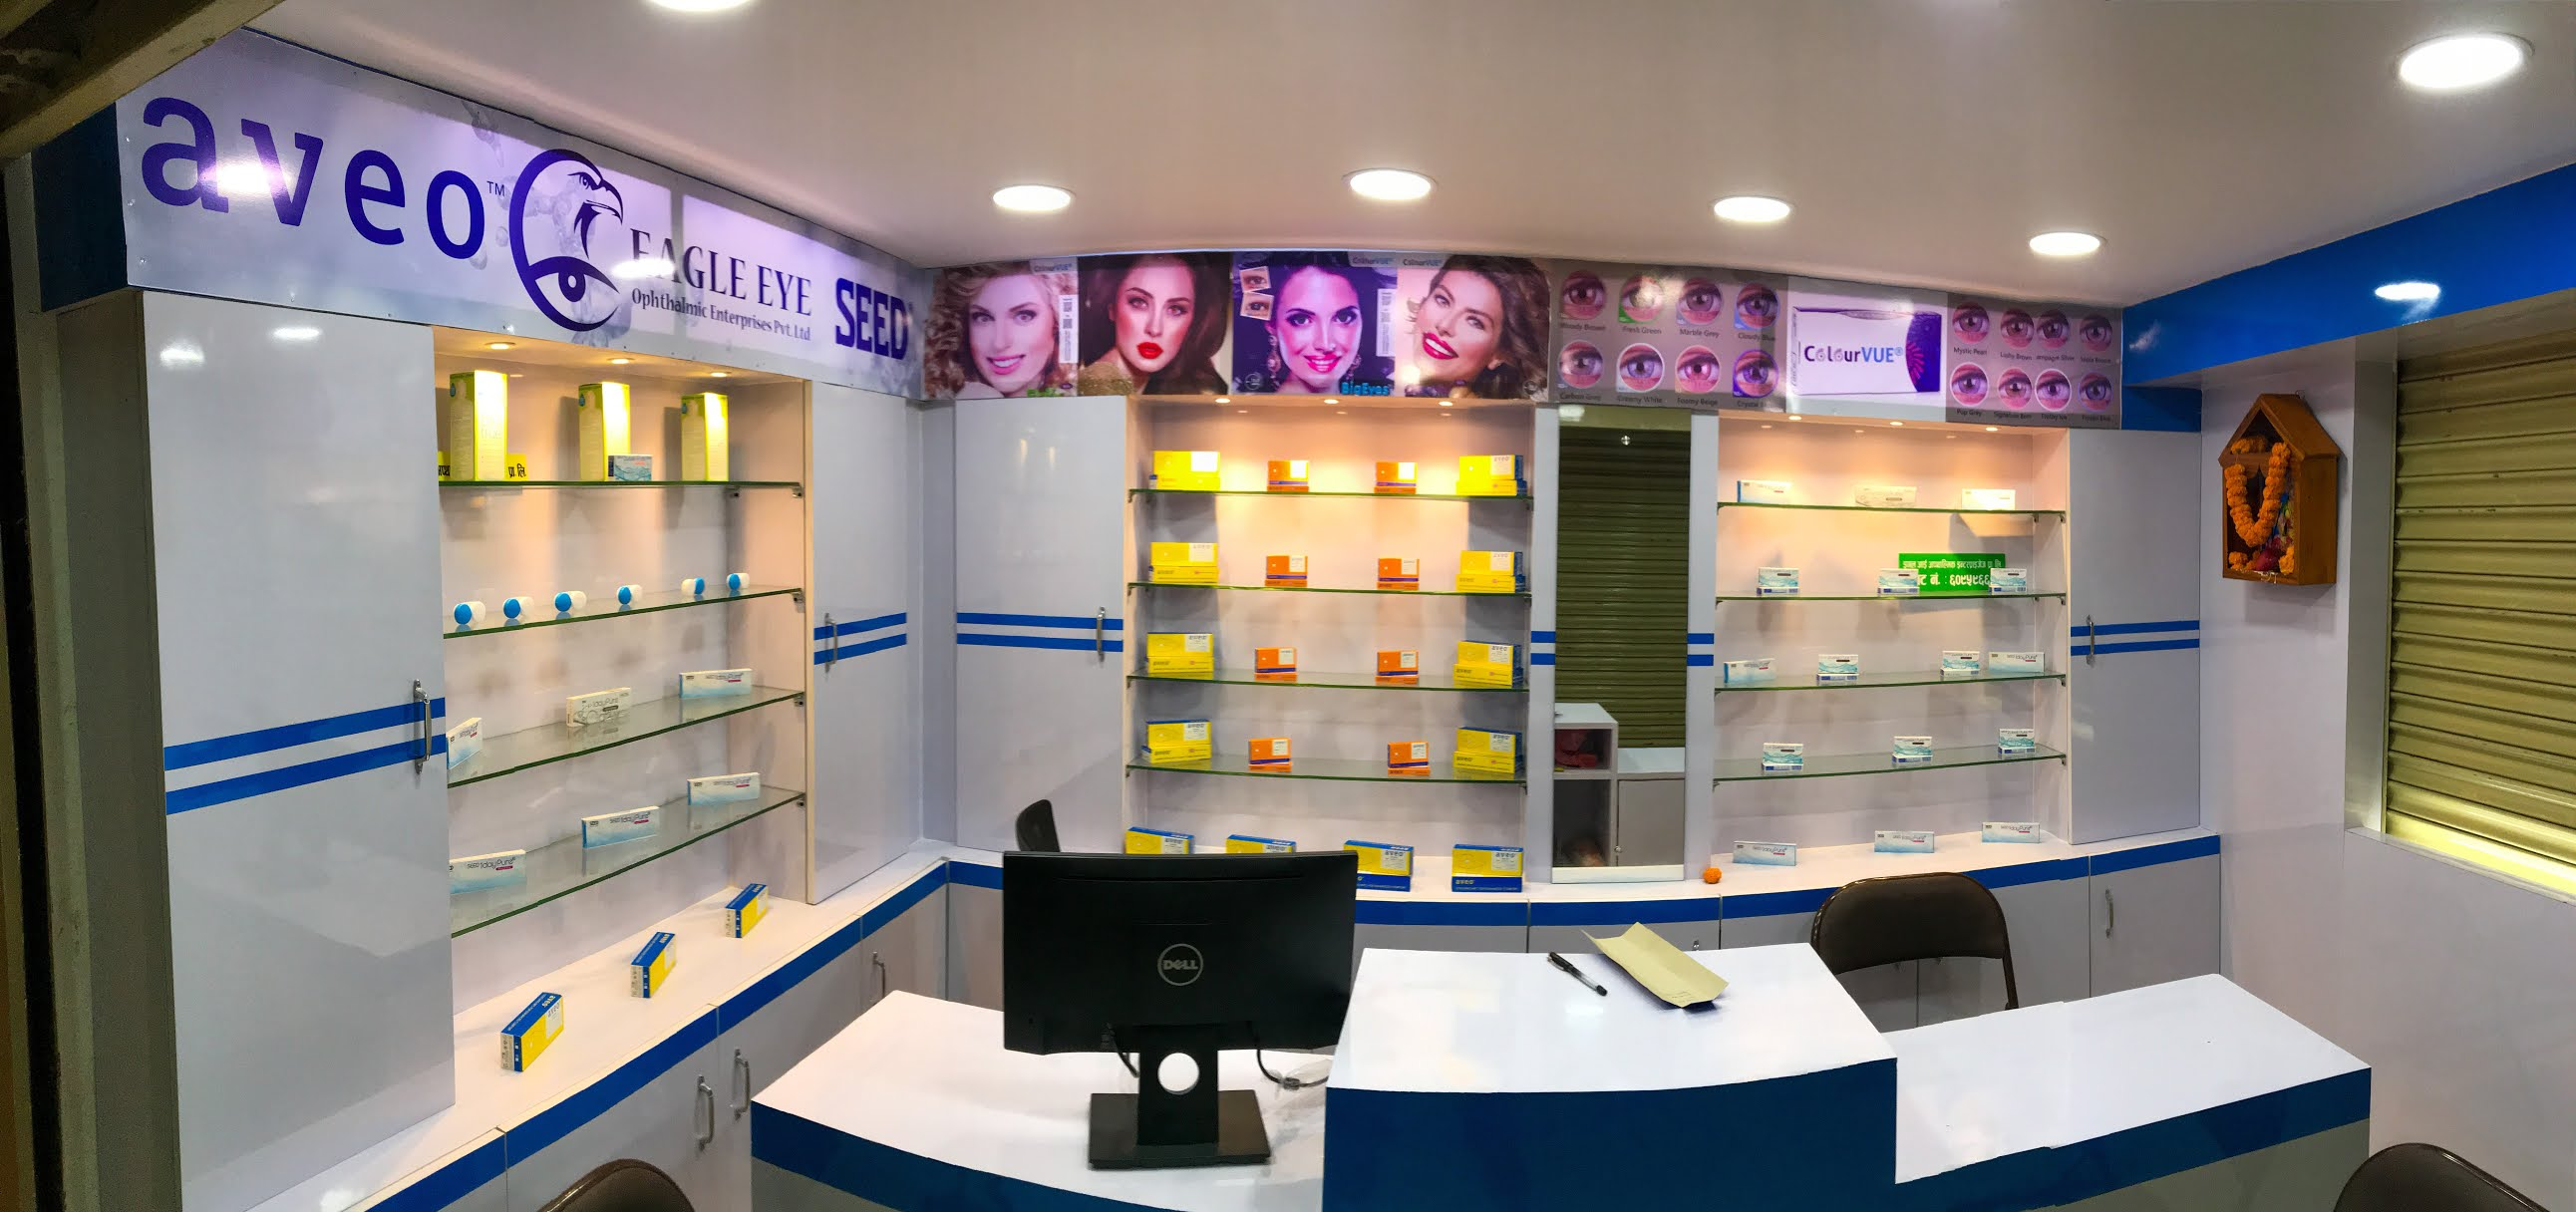 Contact lens store at Nepal by eagle eye ophthalmic enterprises pvt ltd